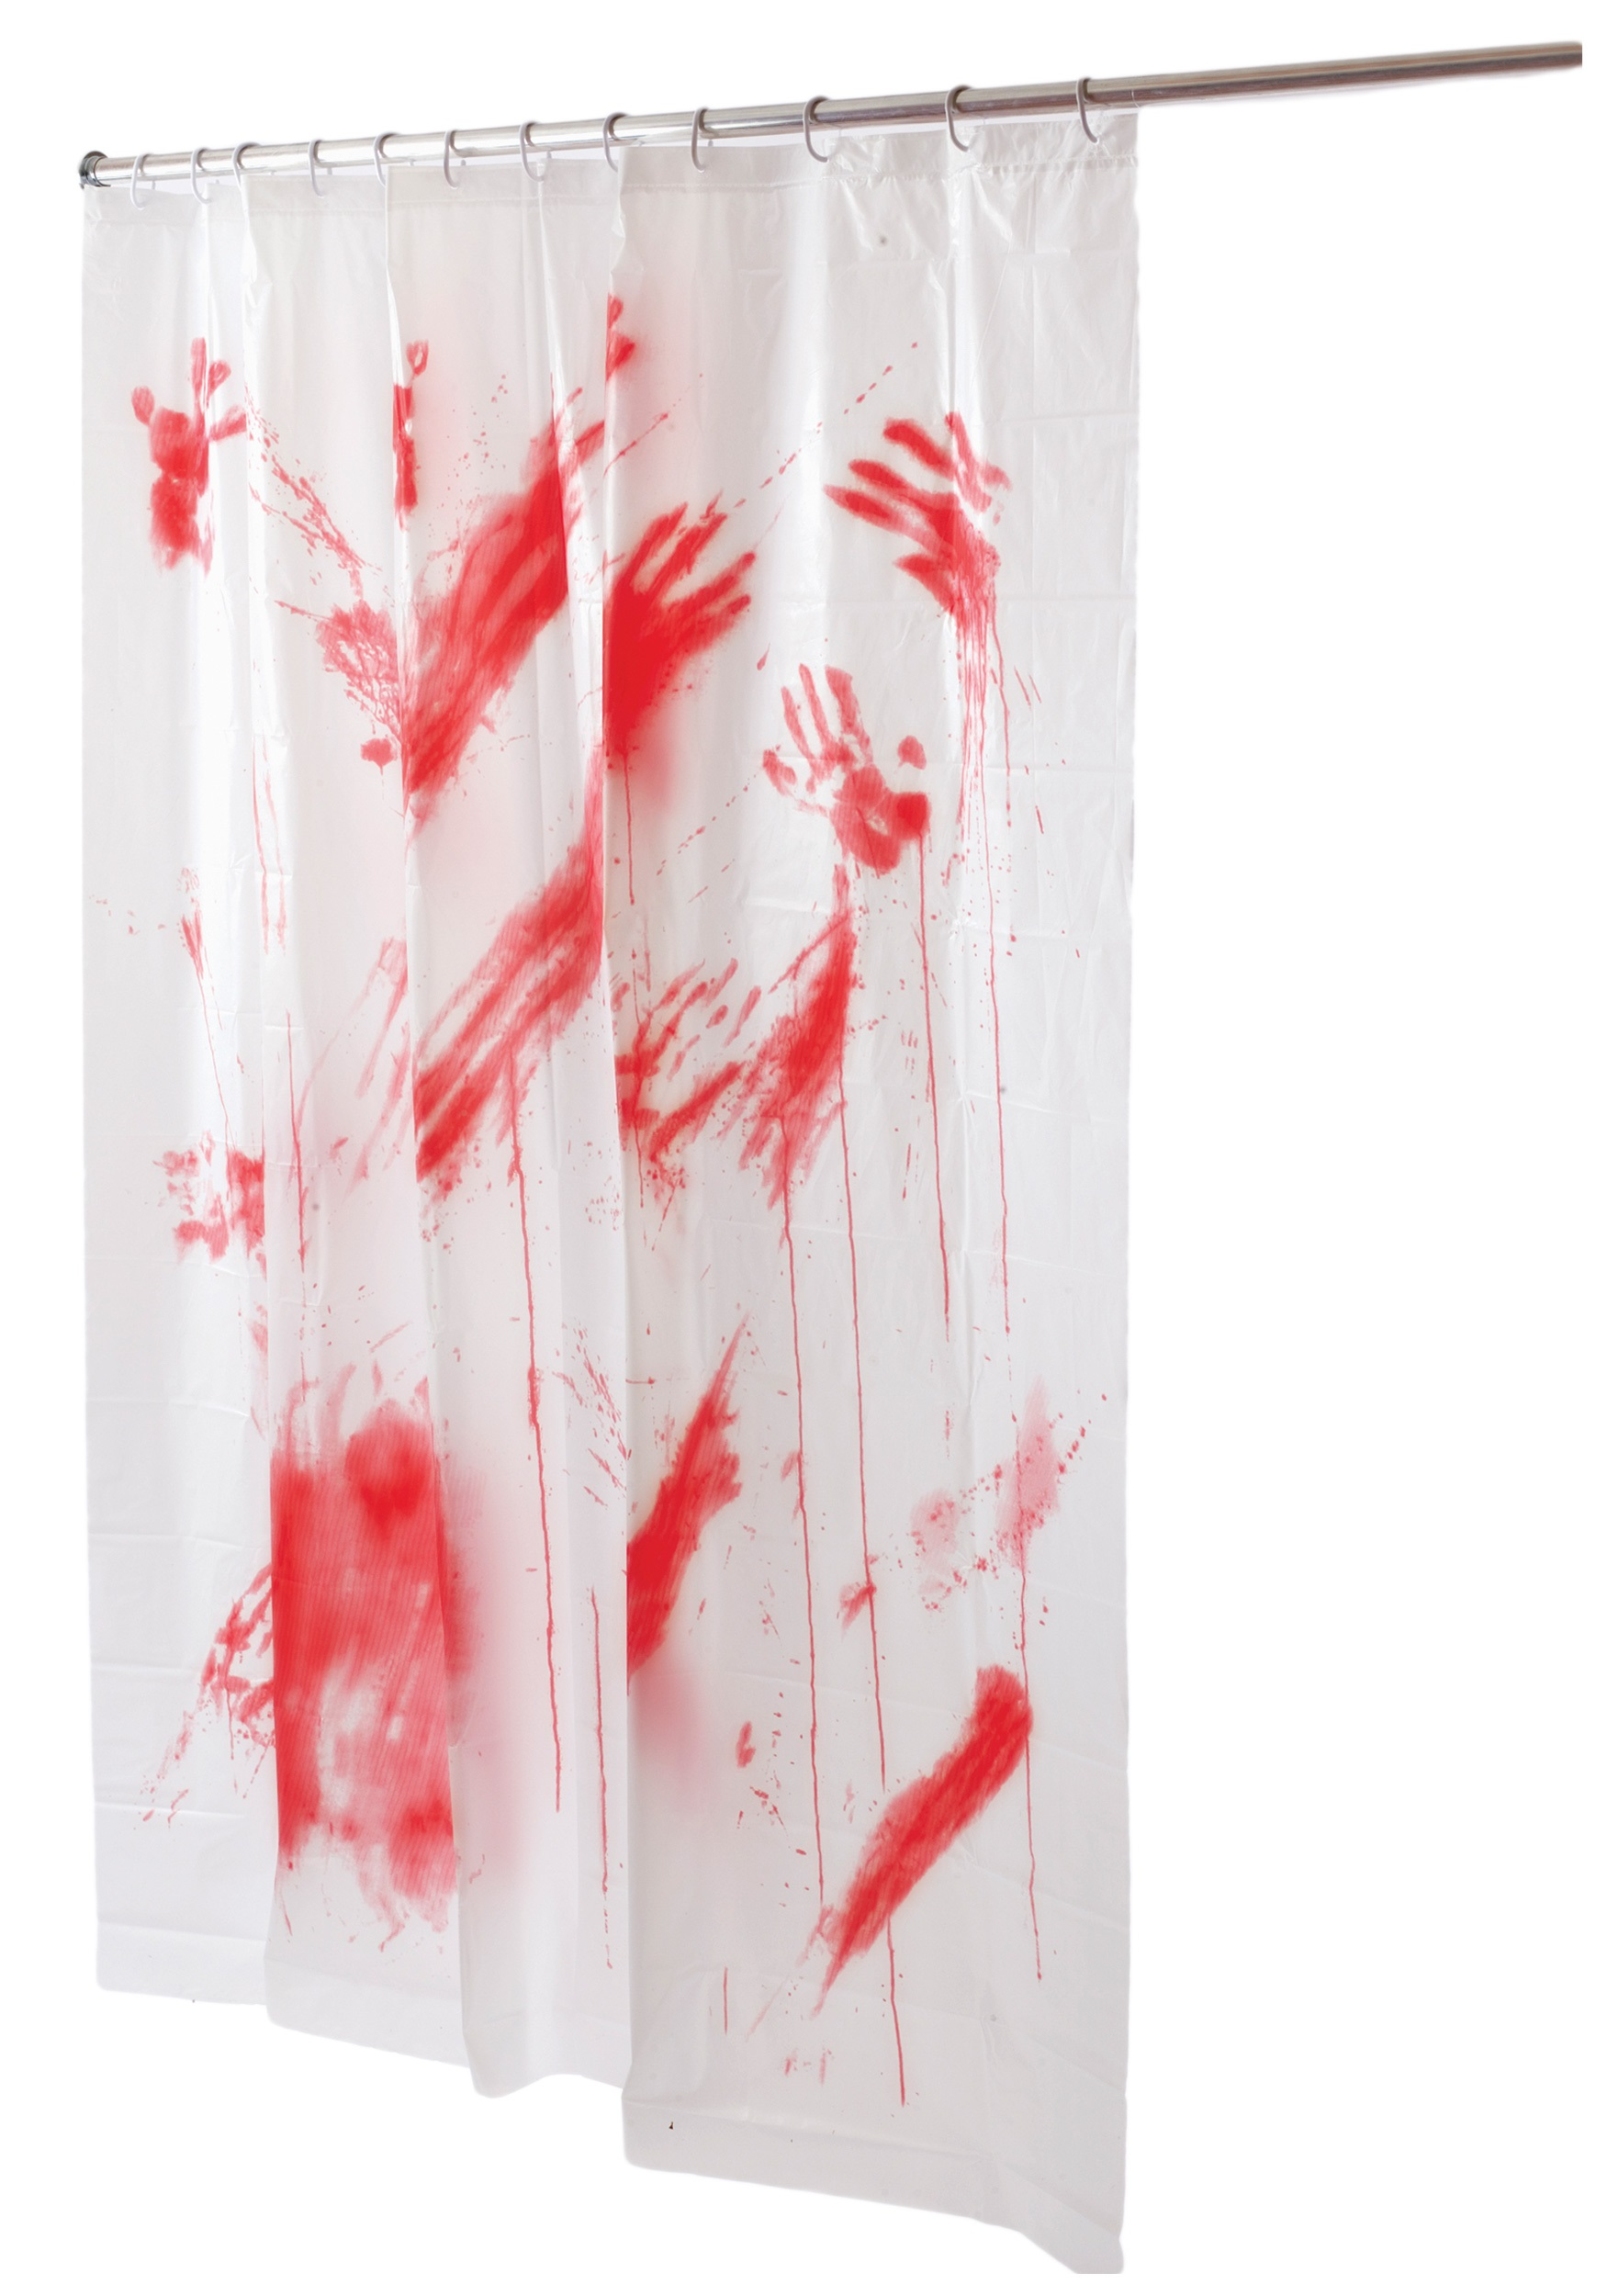 Blood Spatter Shower Curtain - Indoor Haunted Bathroom Decoration